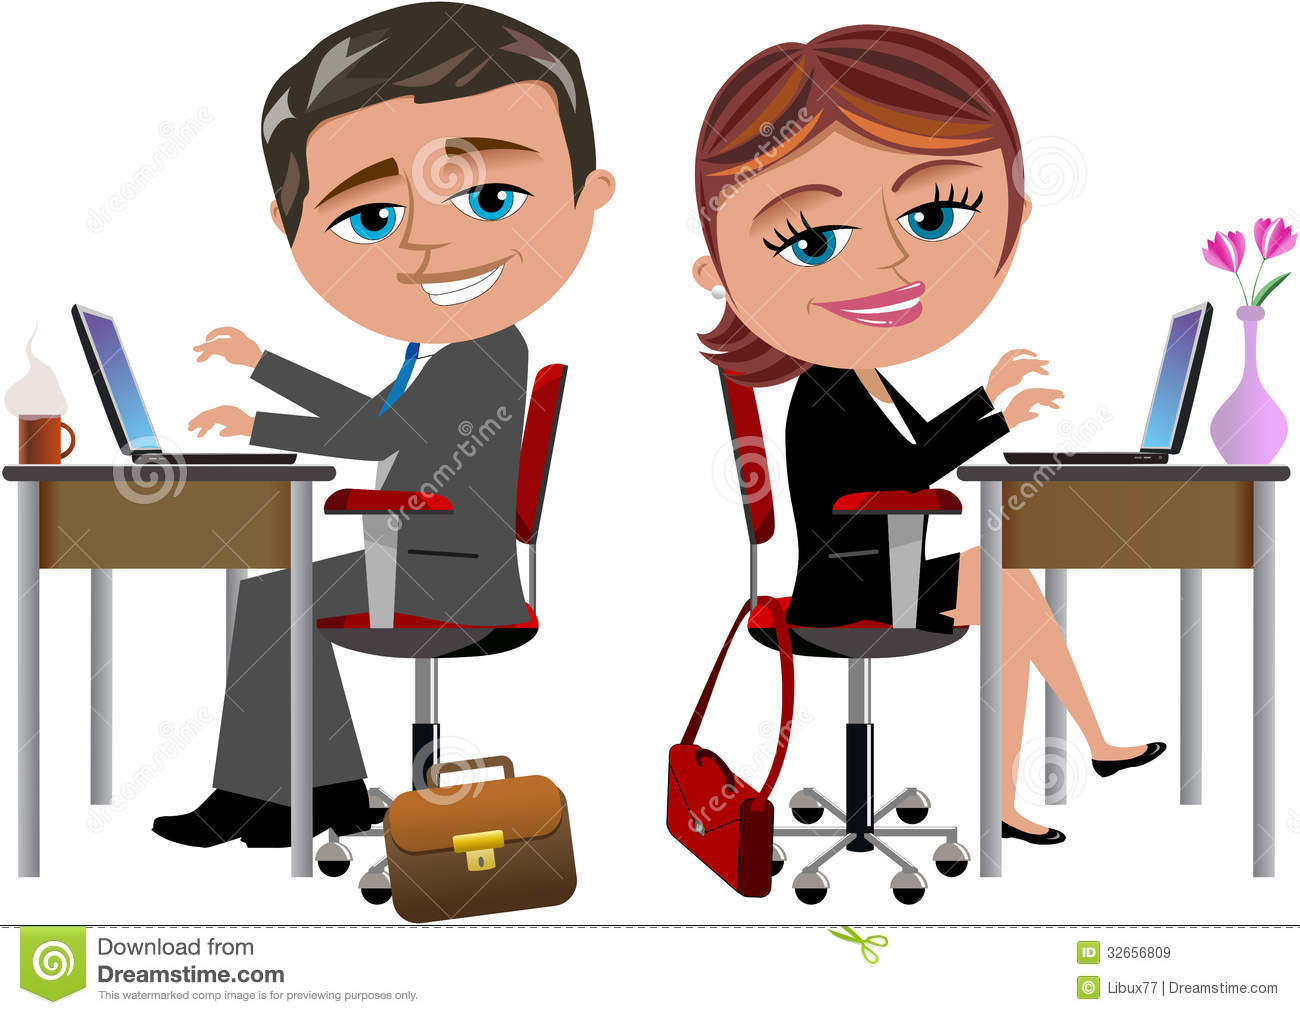 Illustration Featuring Bob And Meg Working With Computer At Office